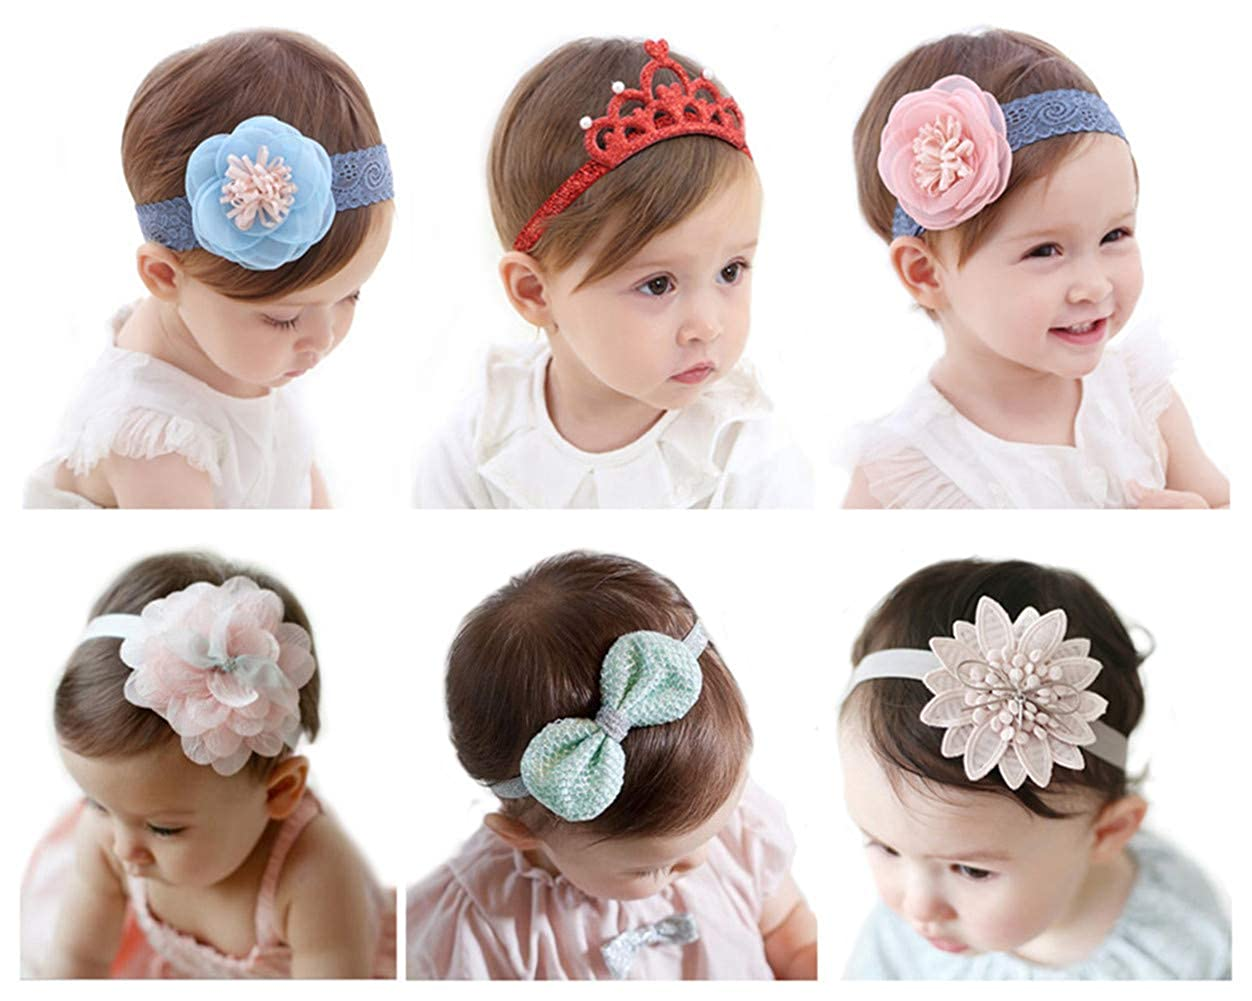 100% True Cute Baby Headband Newborn Infant Toddler Girl Flower Hair Accessories Traveling Baby & Toddler Clothing